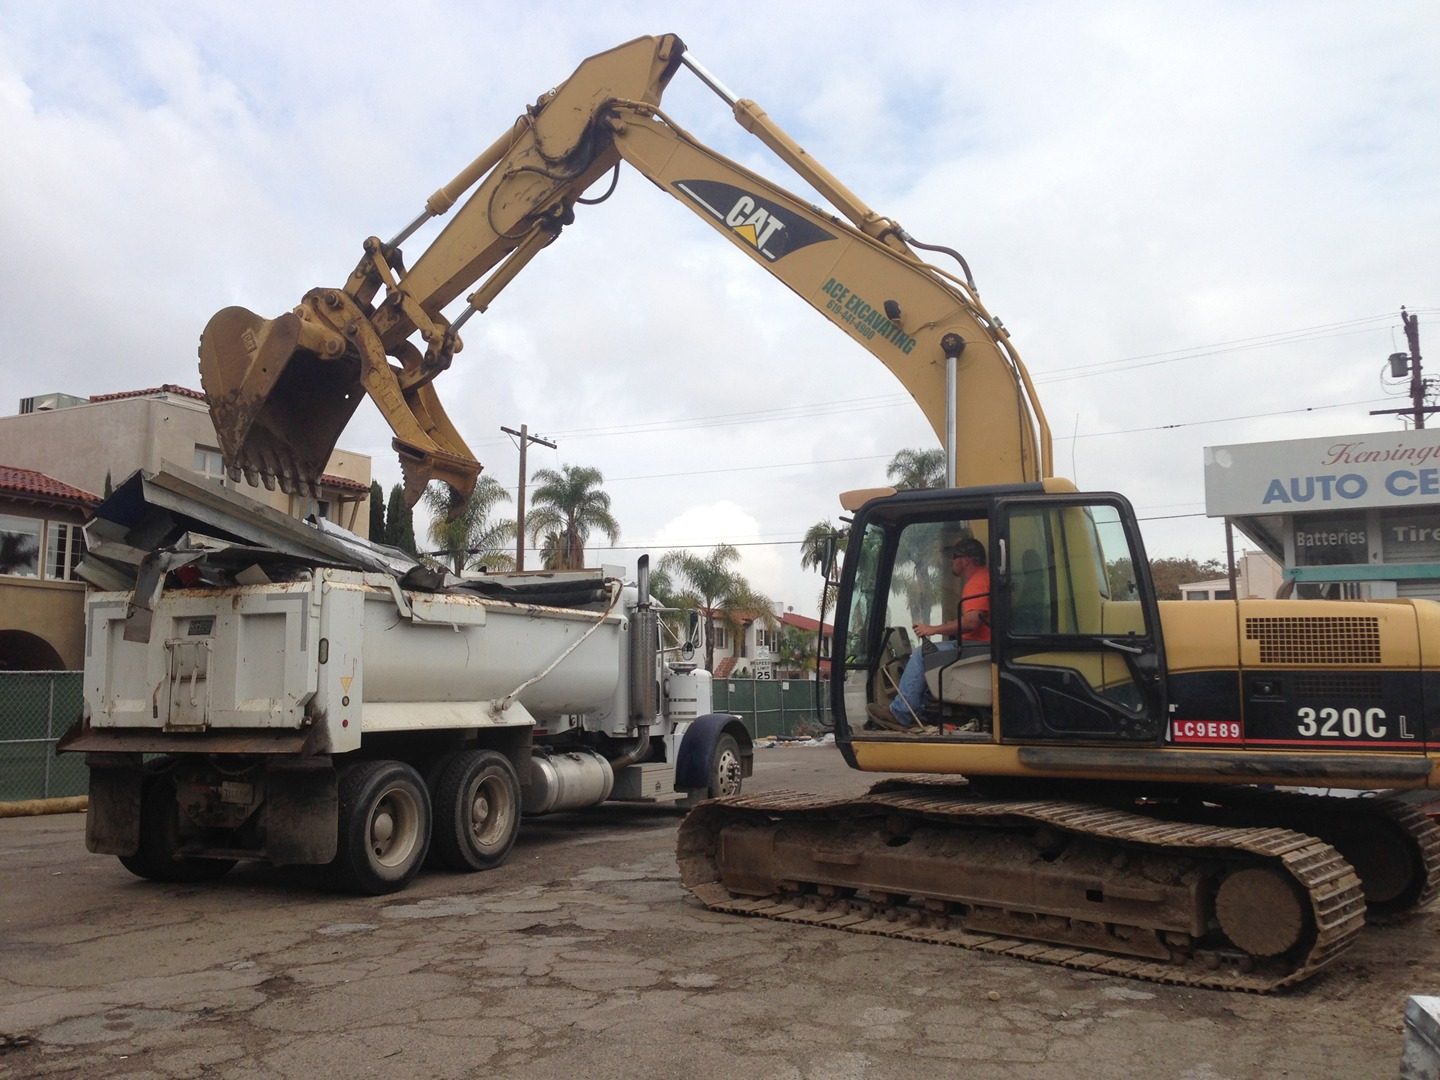 Excavating & Environmental Services - Ace Excavating & Environmental Services, Inc.